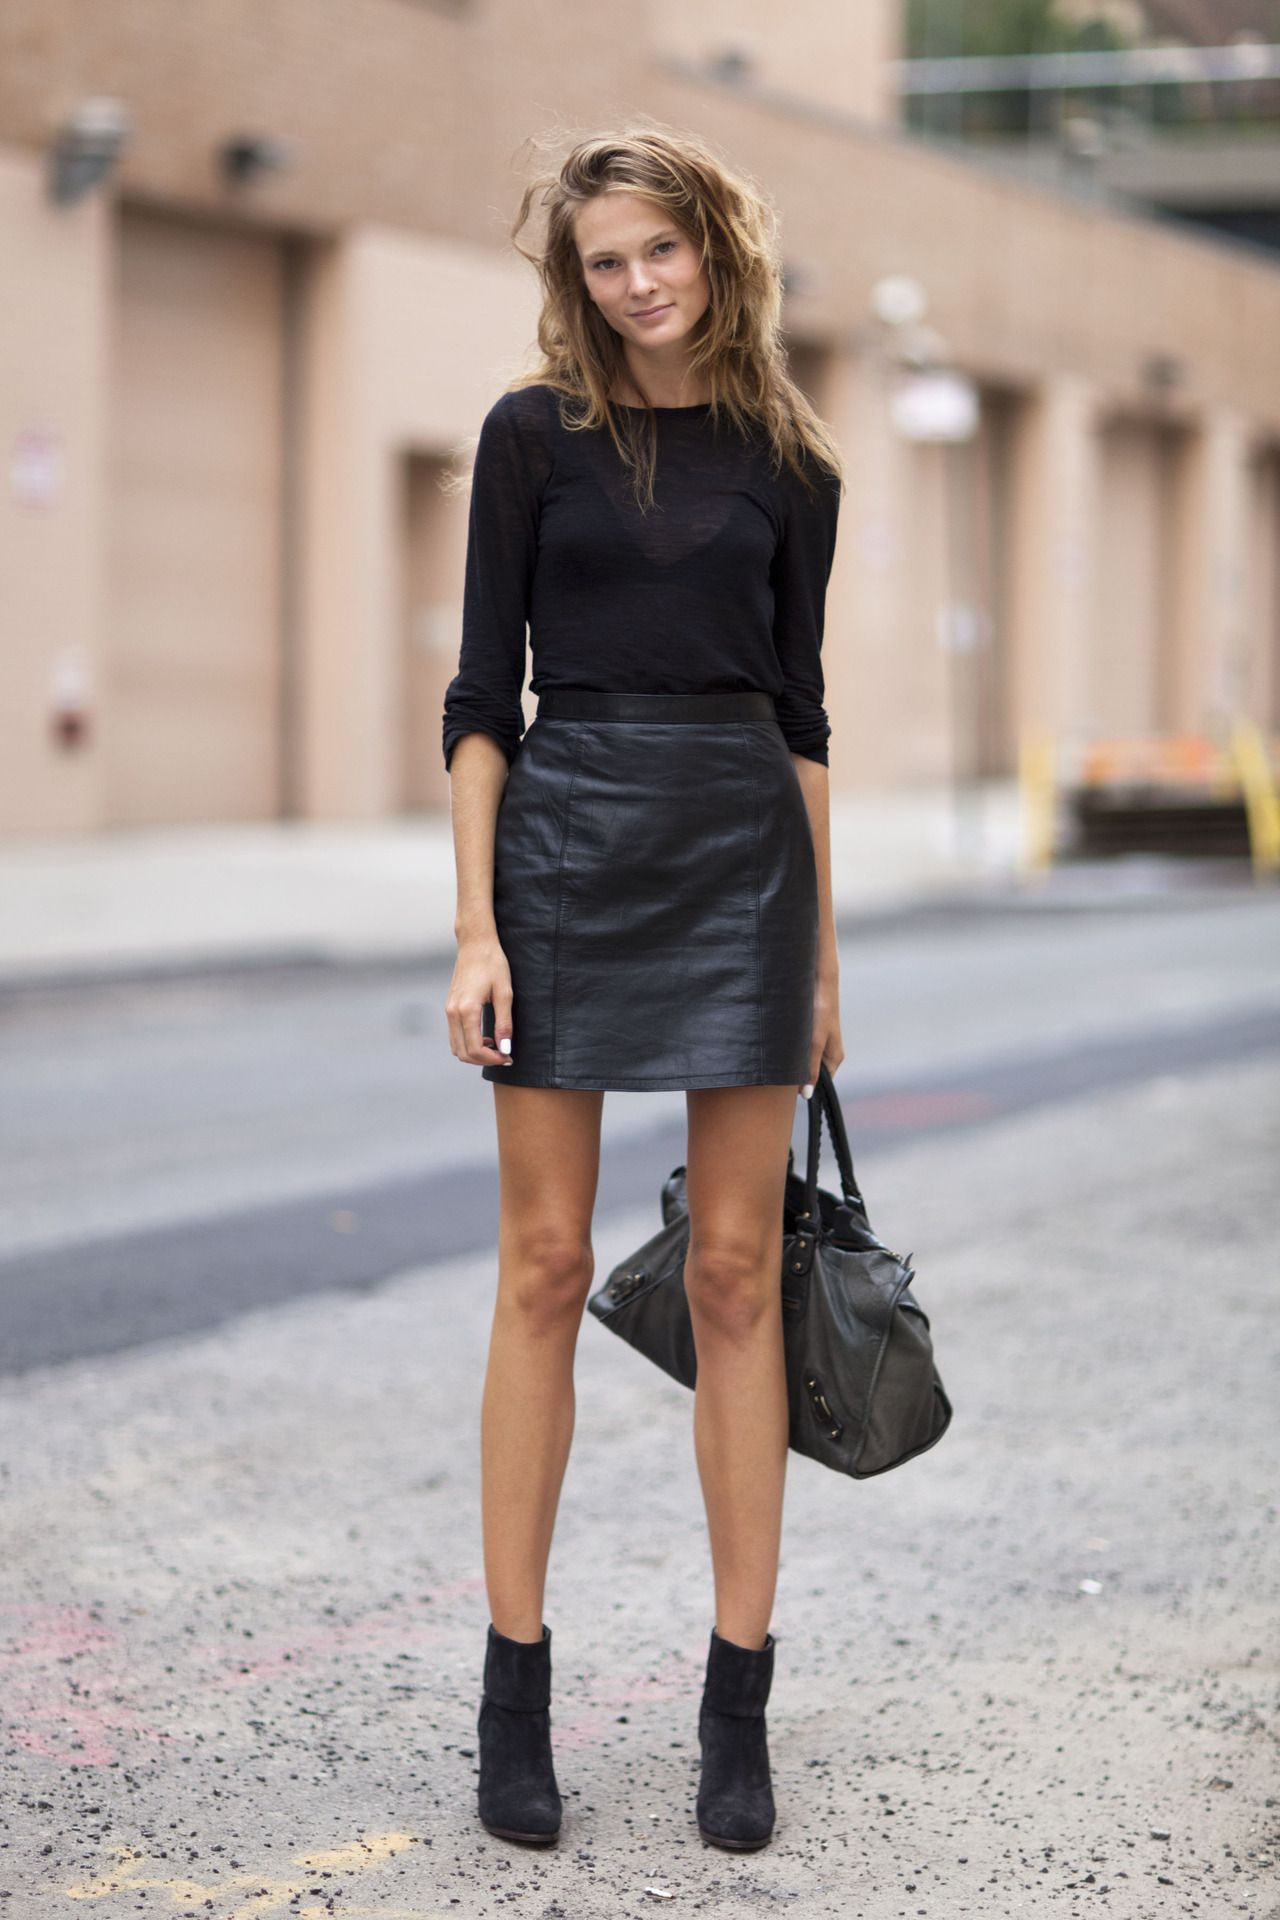 Leather Based Fashions – Some Dos And Don'ts | Black knit, Mini ...